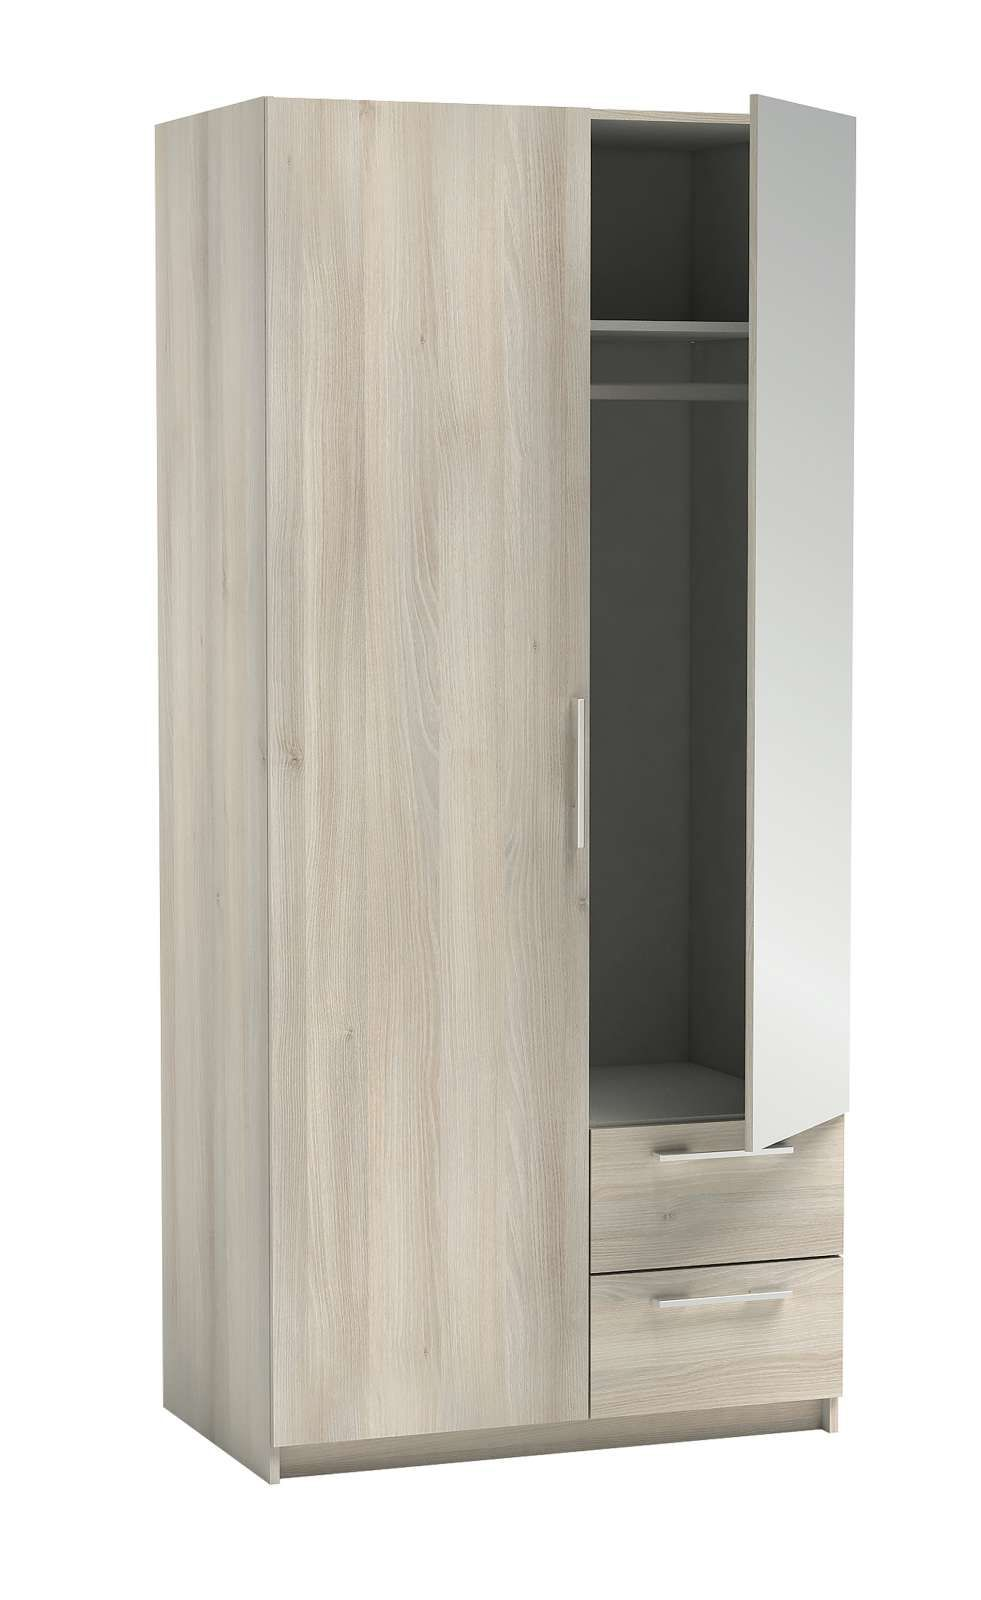 WARDROBE 2DOORS 2DRAWERS NEW YORK LIGHT OAK